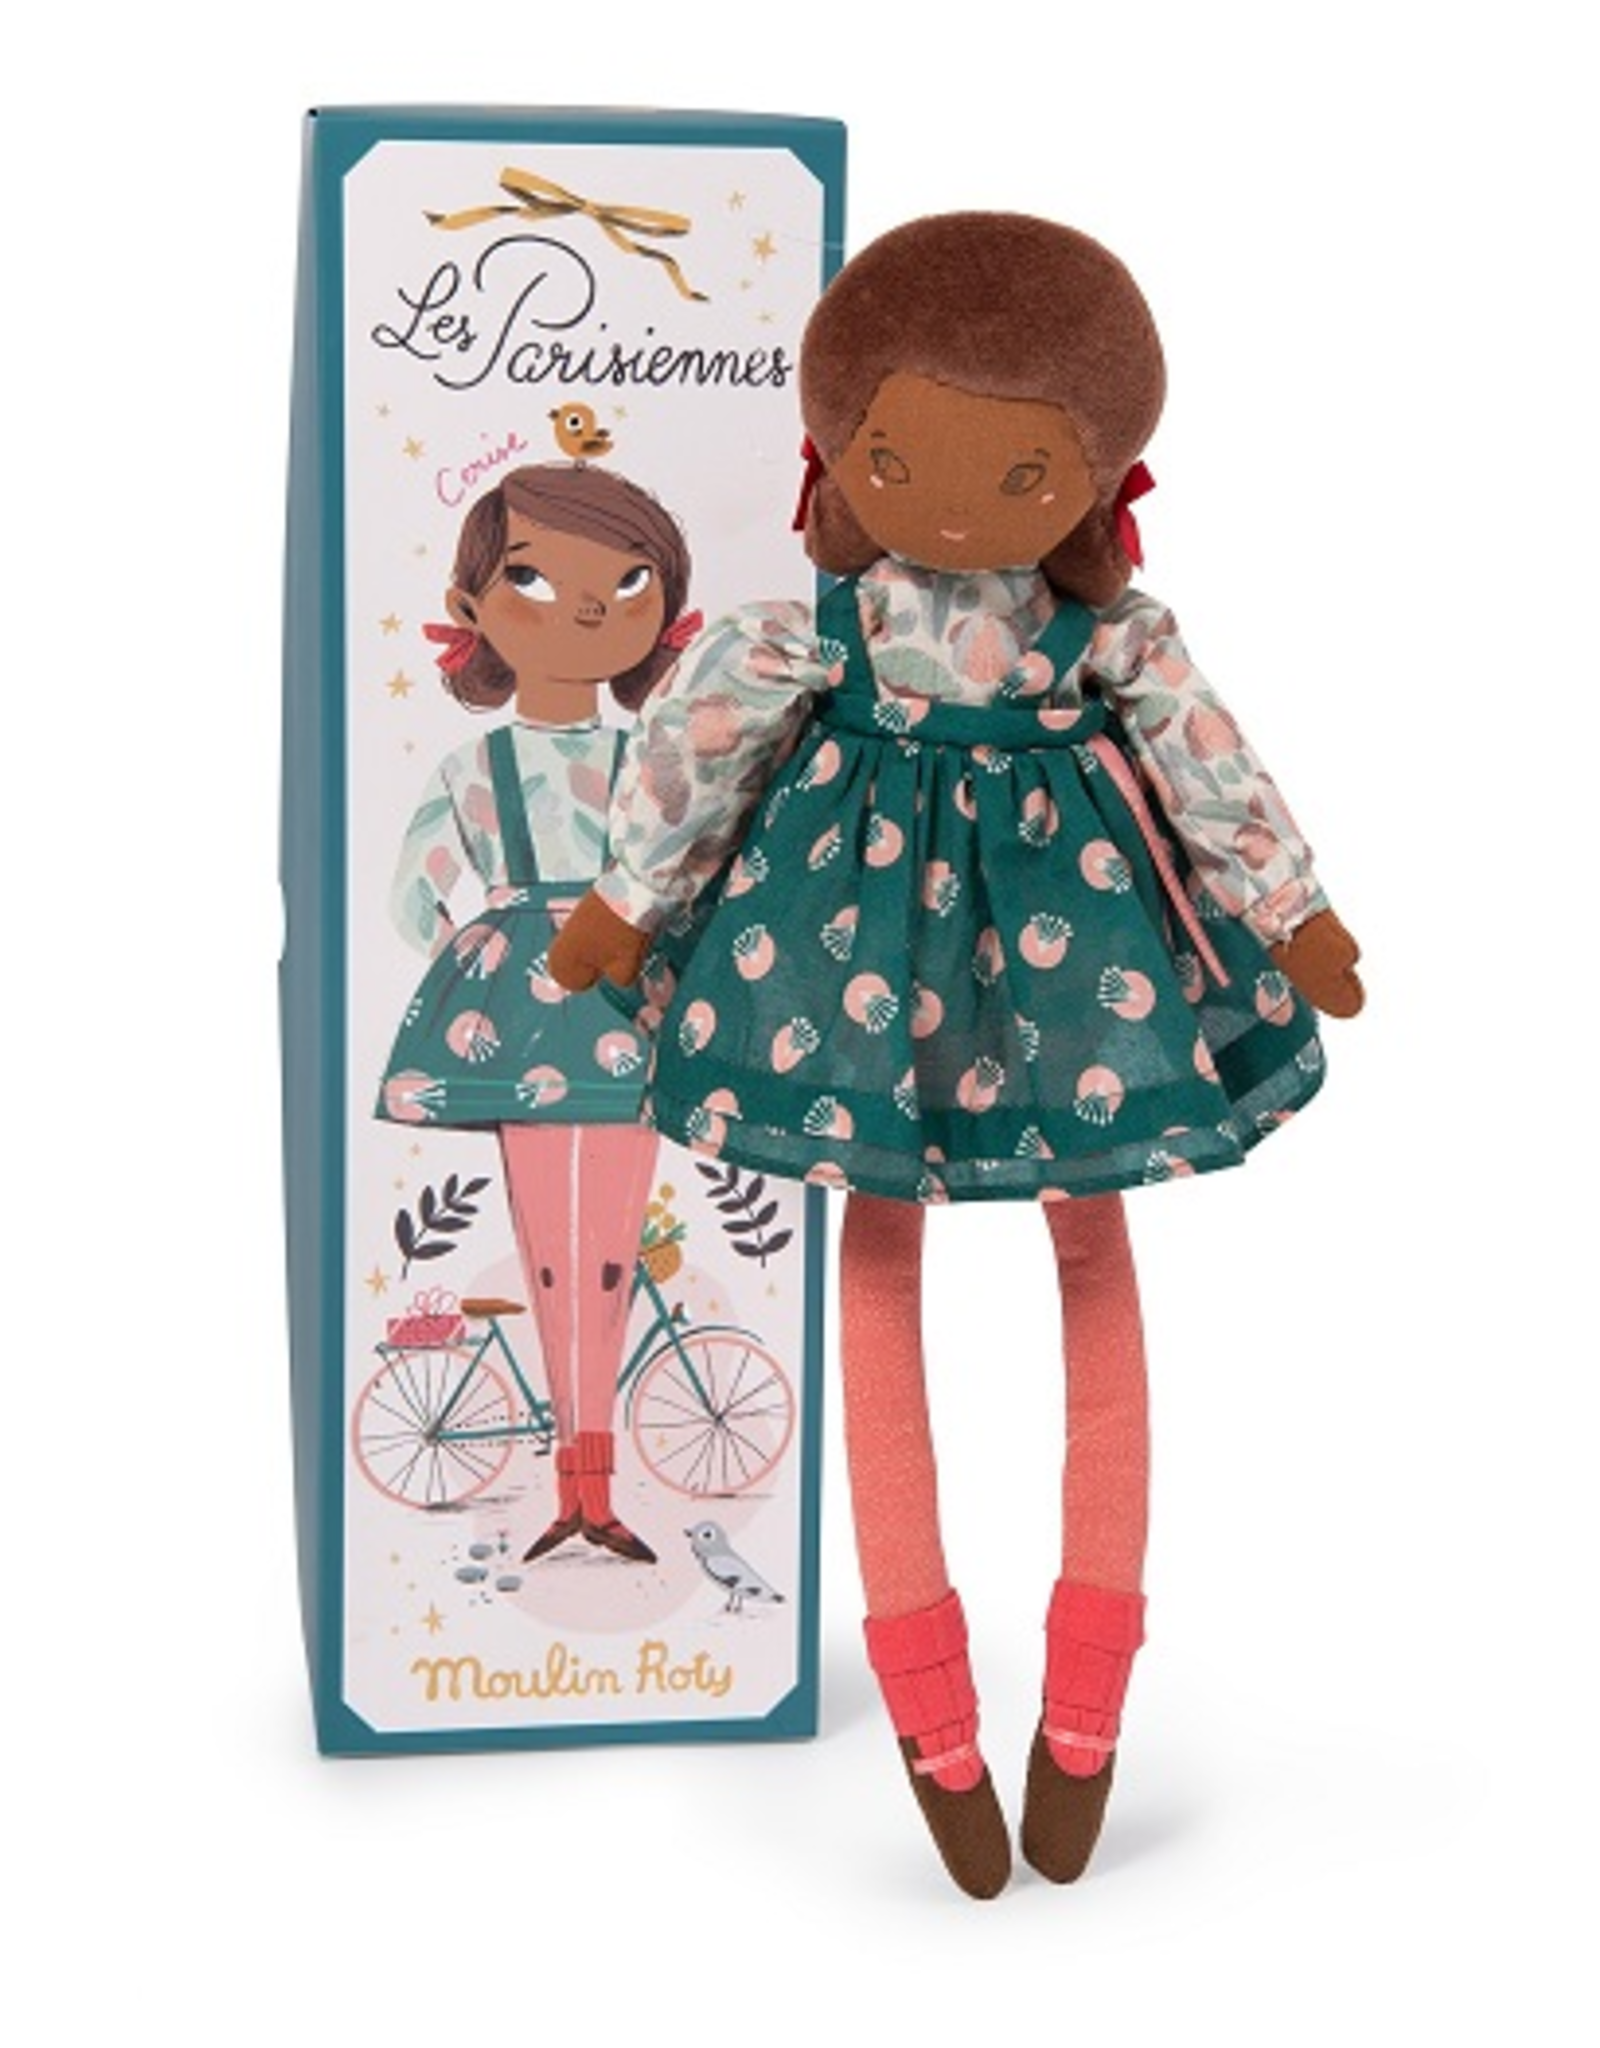 Moulin Roty Parisiennes - Mademoiselle Cerise doll